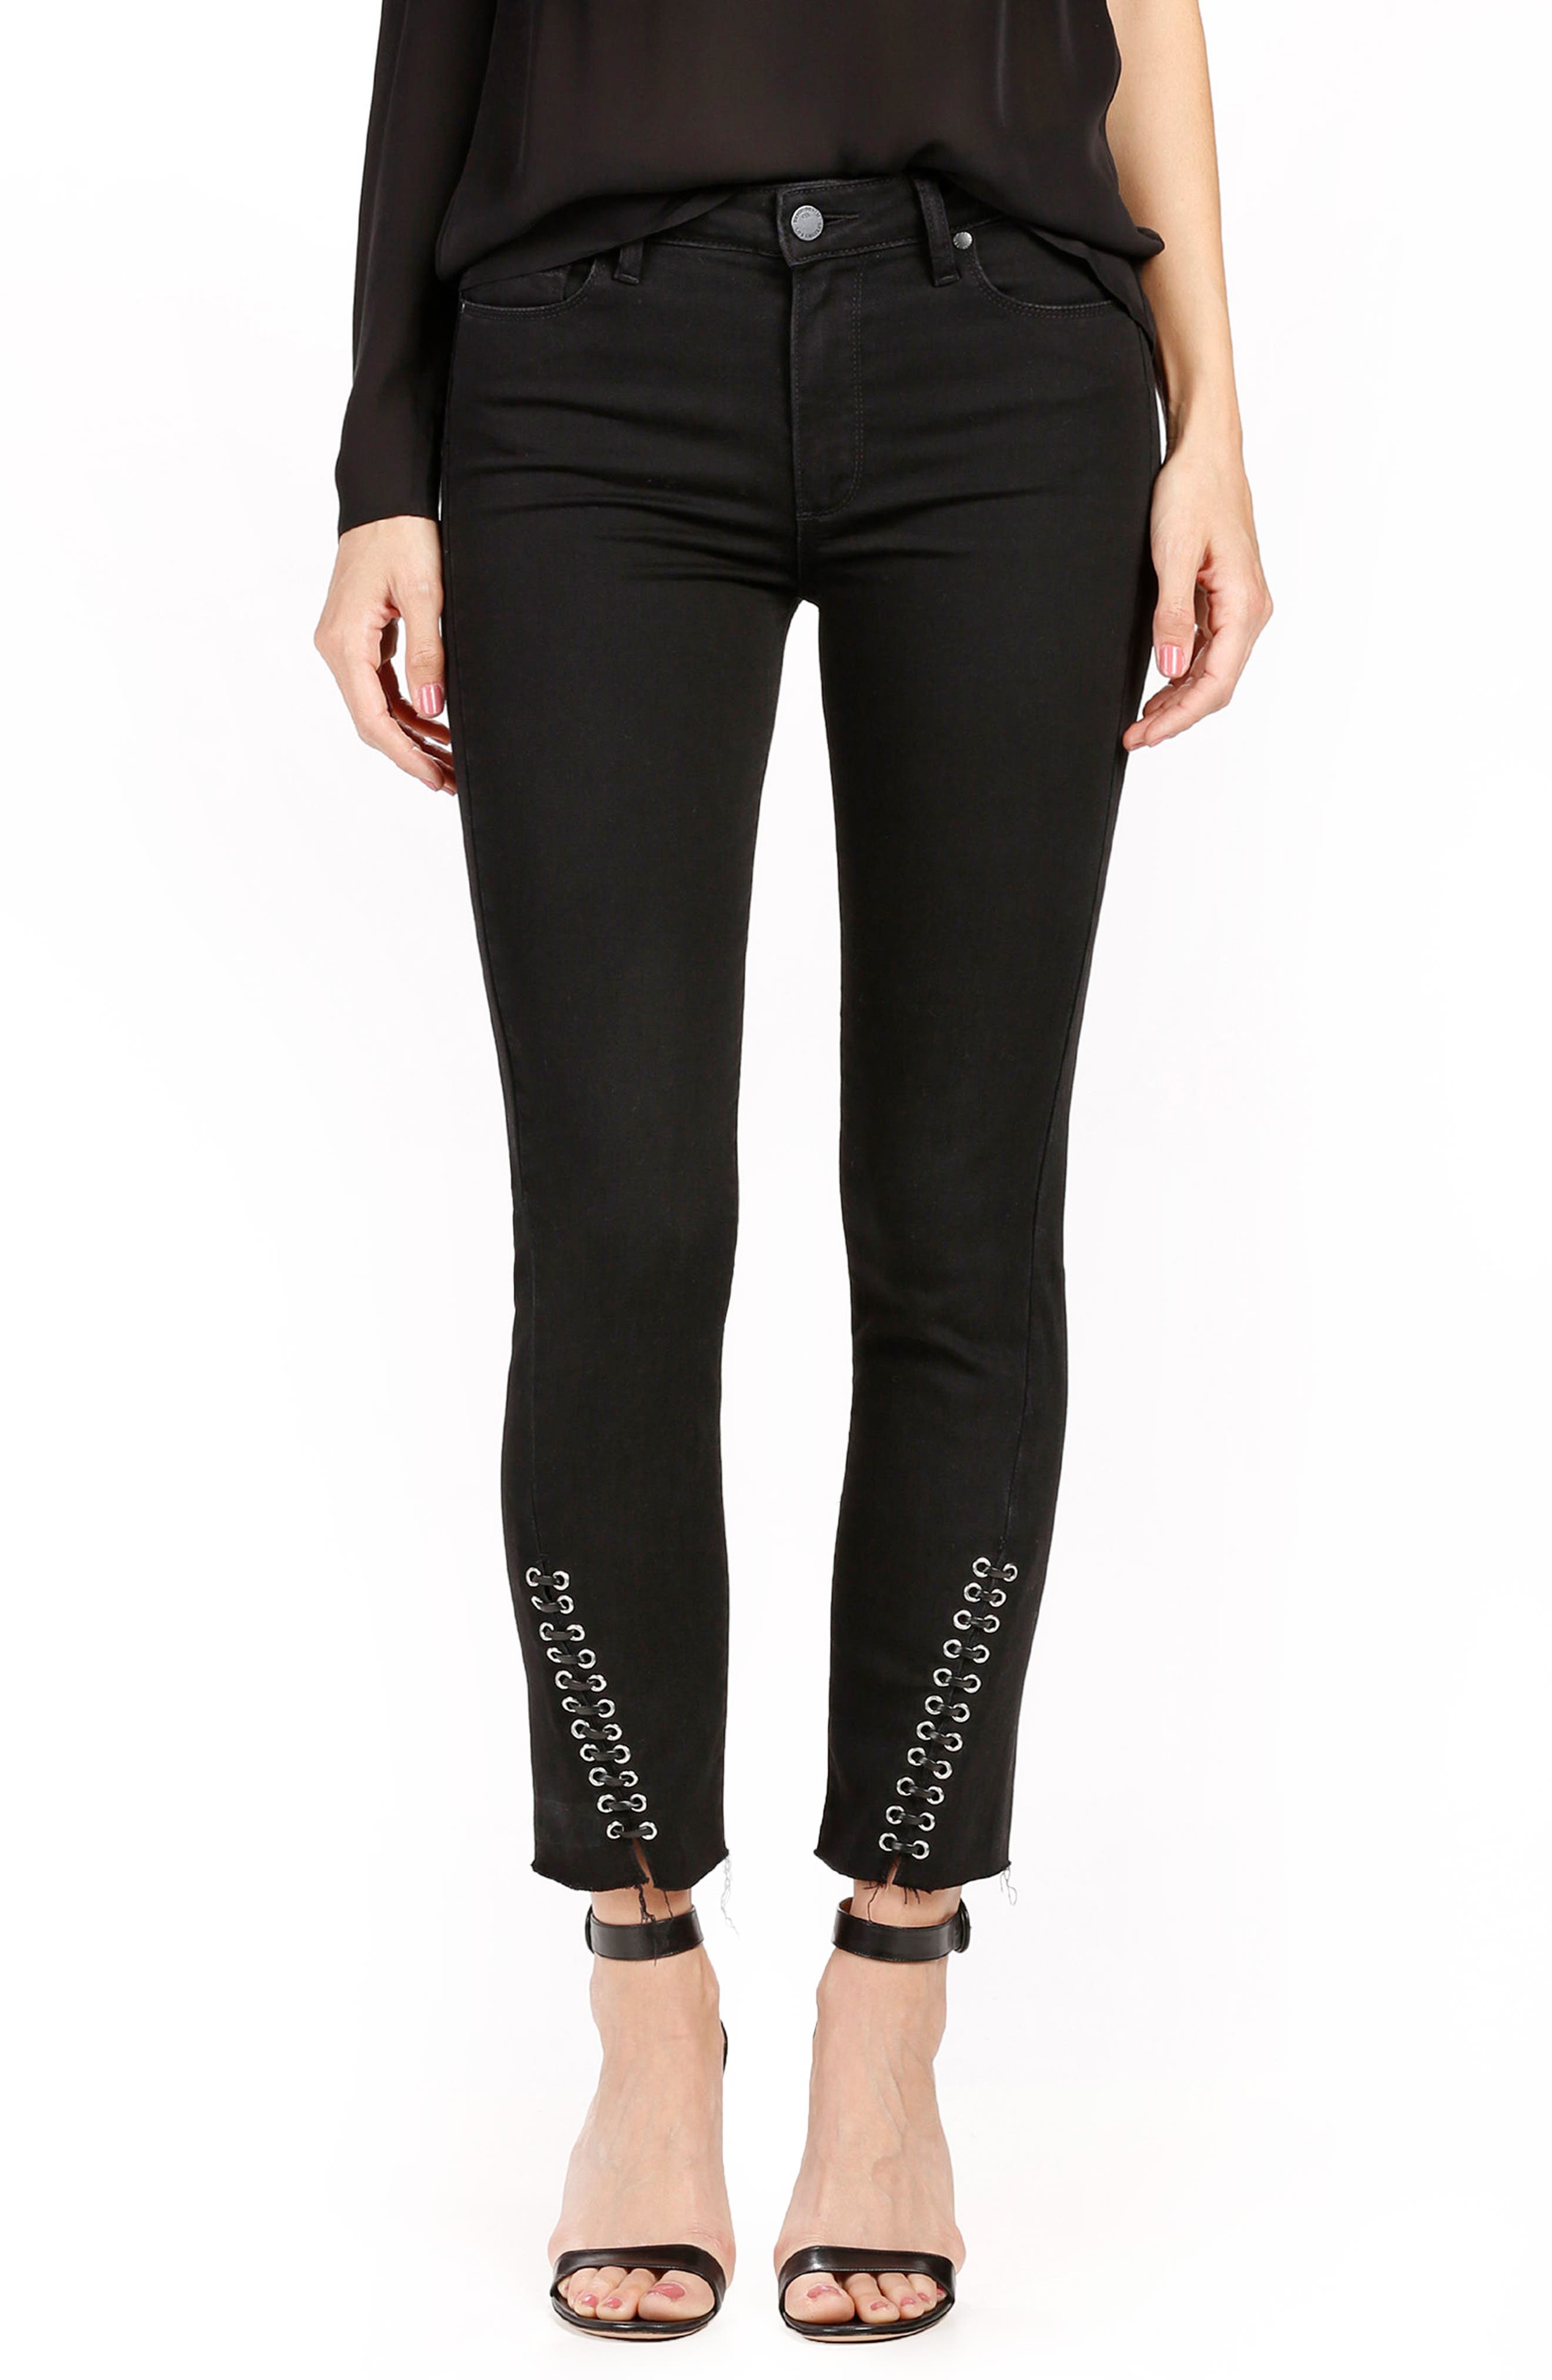 Alternate Image 1 Selected - PAIGE Jacqueline High Waist Ankle Straight Leg Jeans (Onyx)